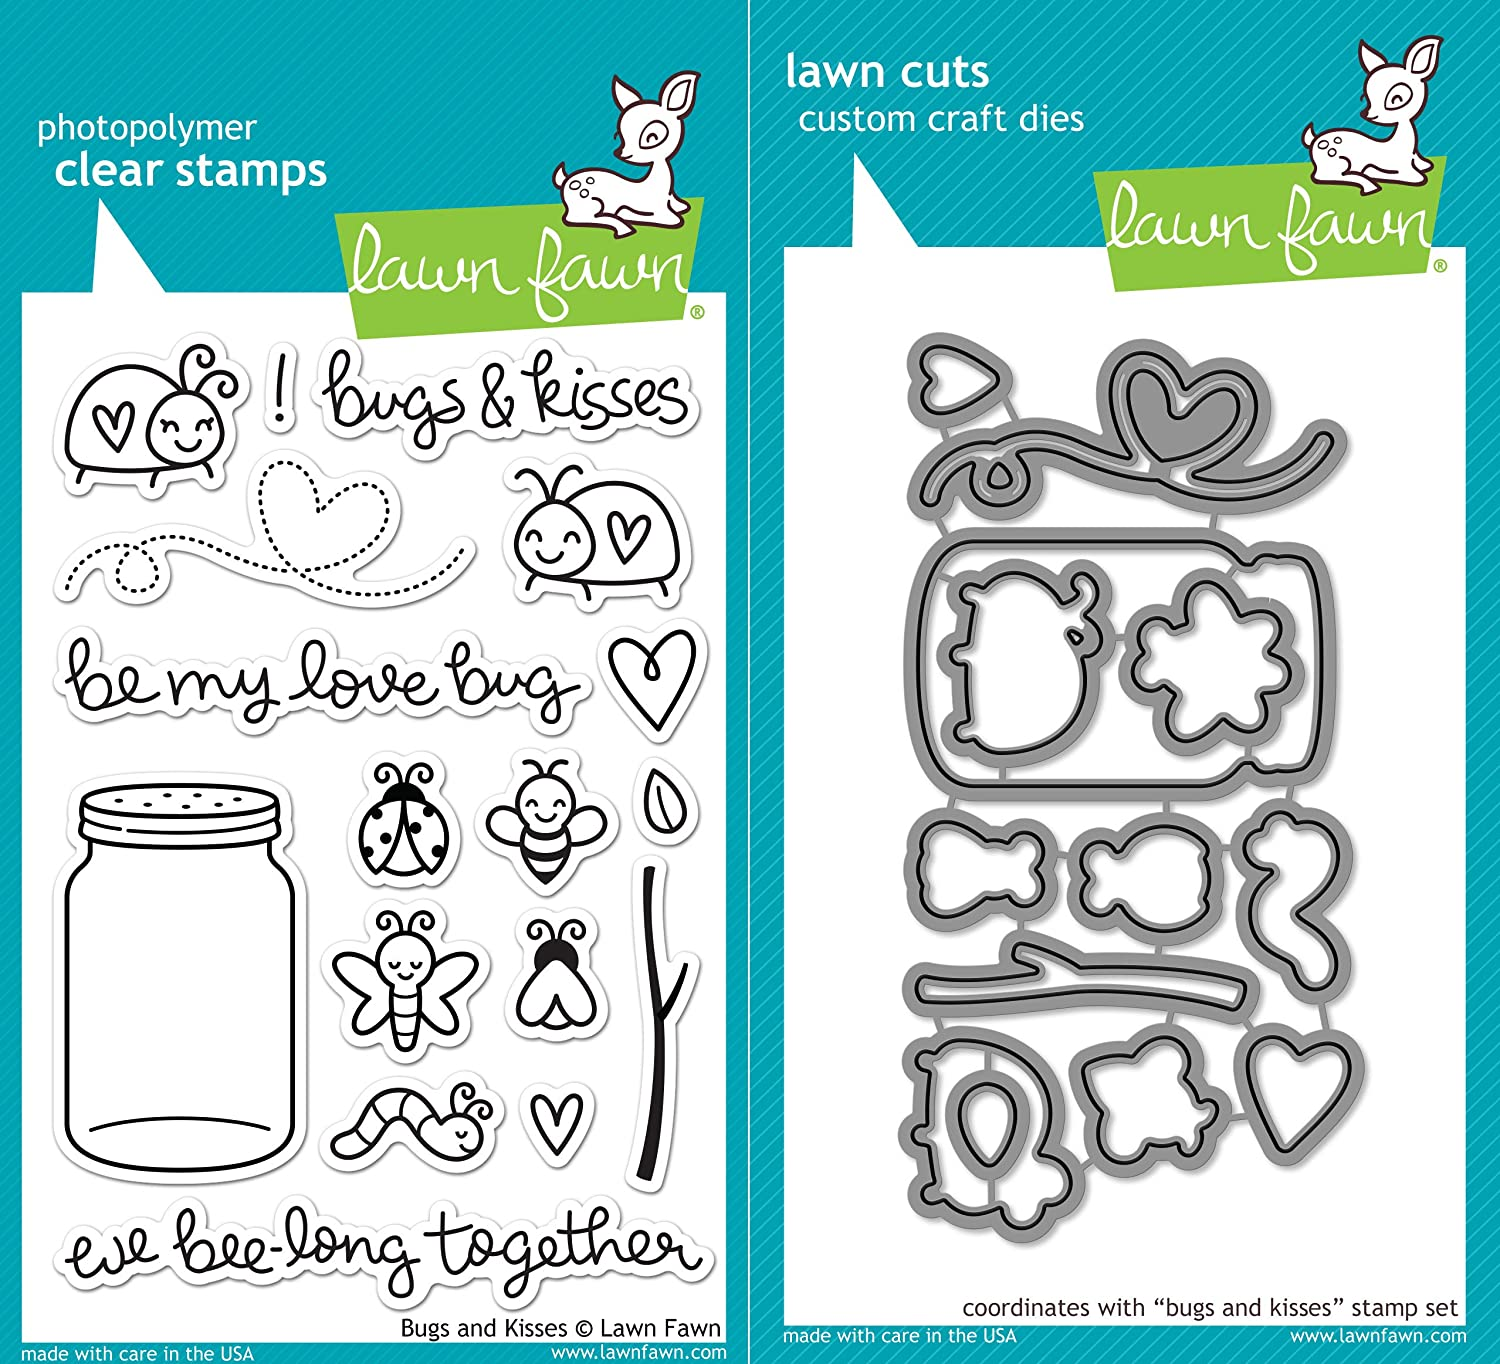 Lawn Fawn Bugs and Kisses Clear Photopolymer Stamps LF789 Bundle with Coordinating Lawn Cuts Dies LF790